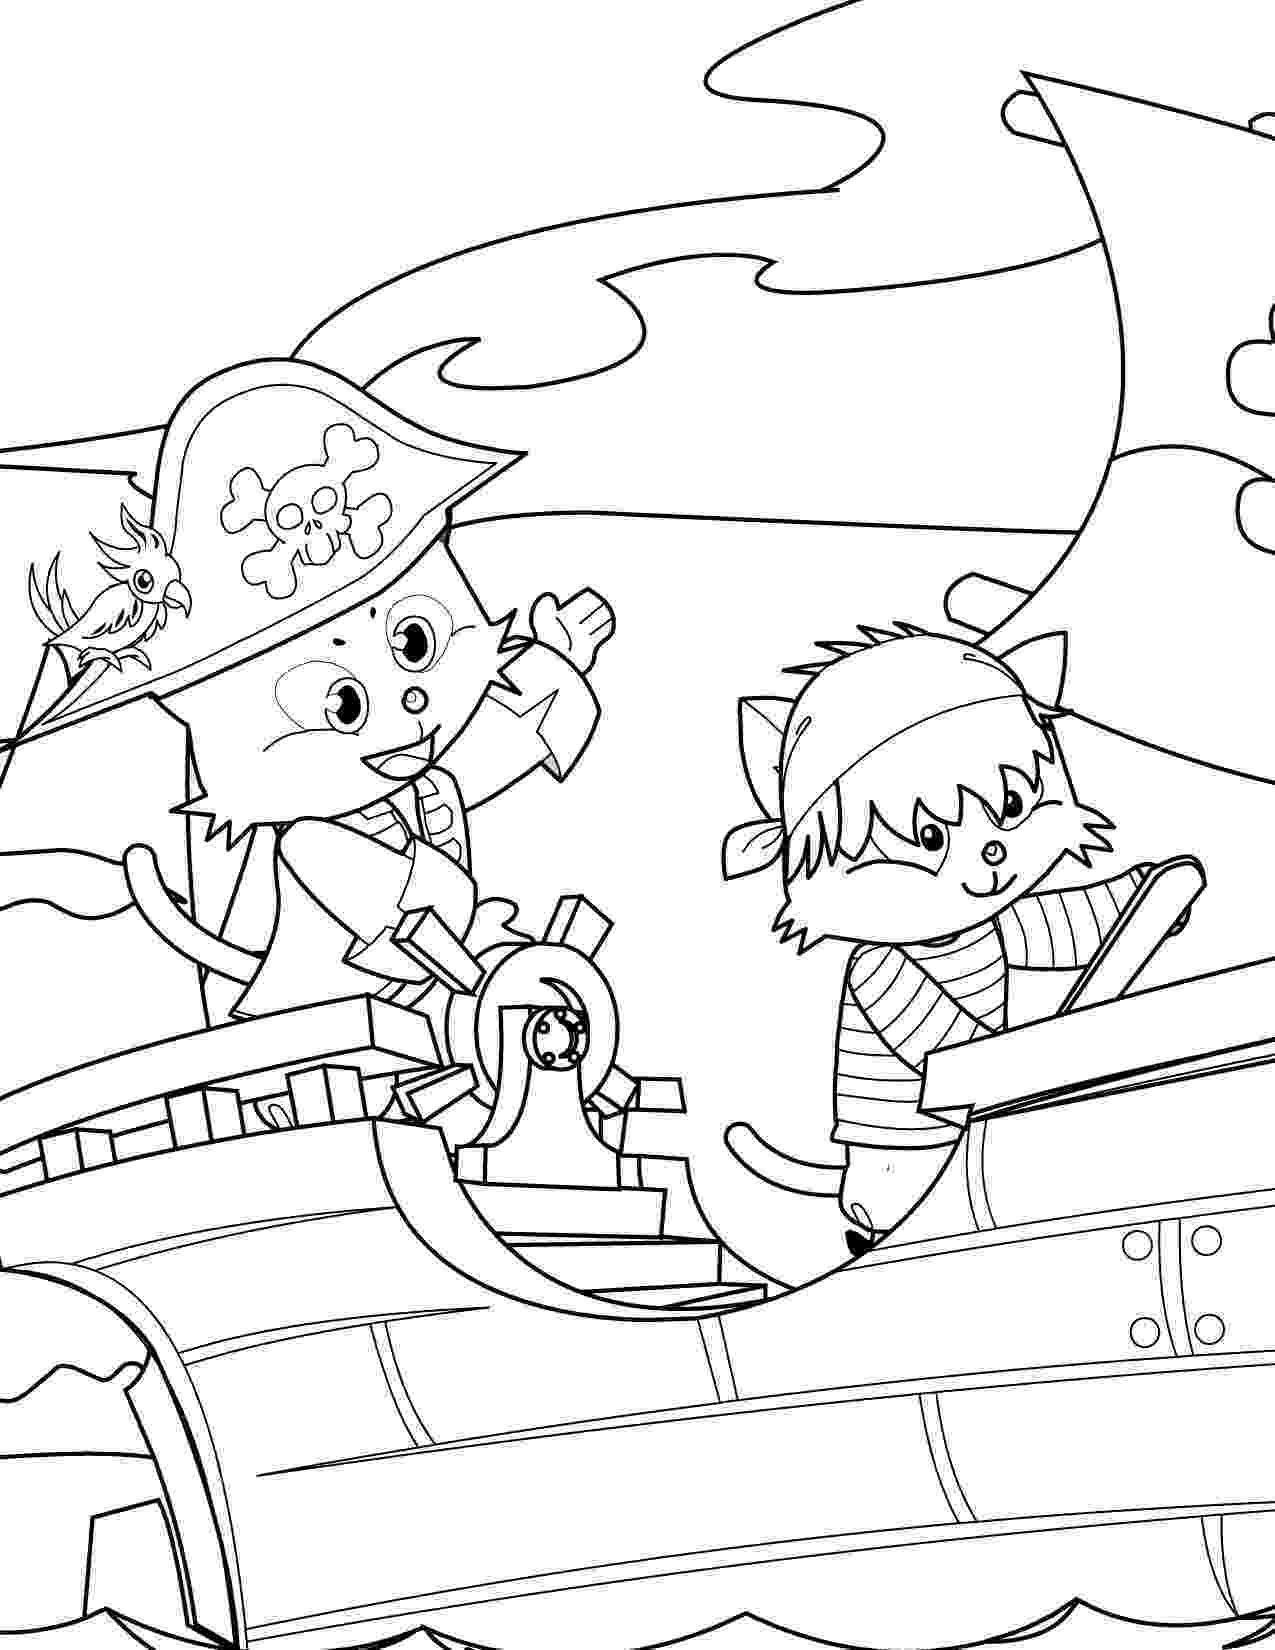 pirate coloring pages for kids printable pirate coloring pages to download and print for free coloring for printable pages kids pirate